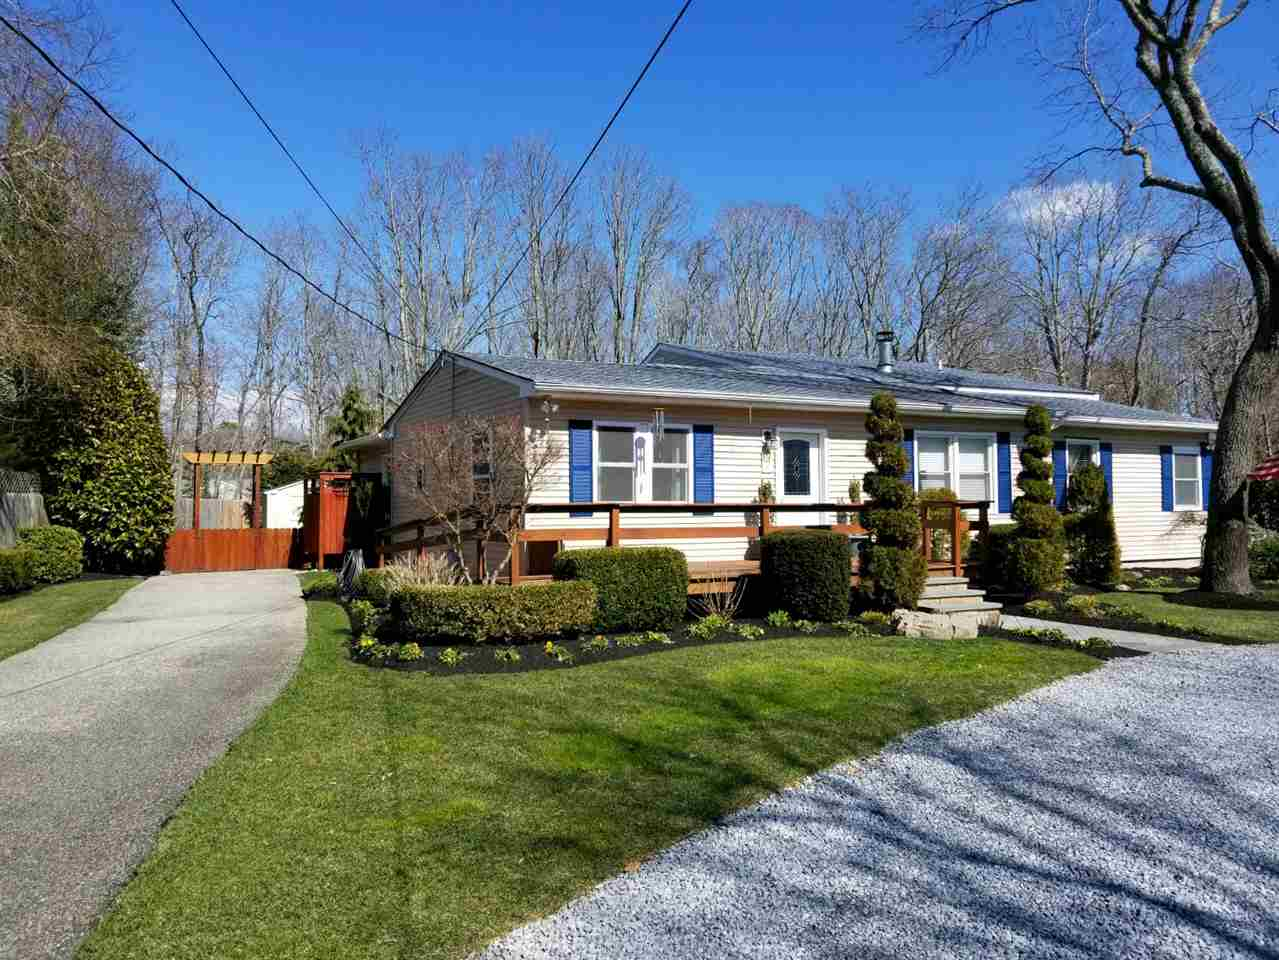 1416 Burleigh Avenue - Cape May Court House